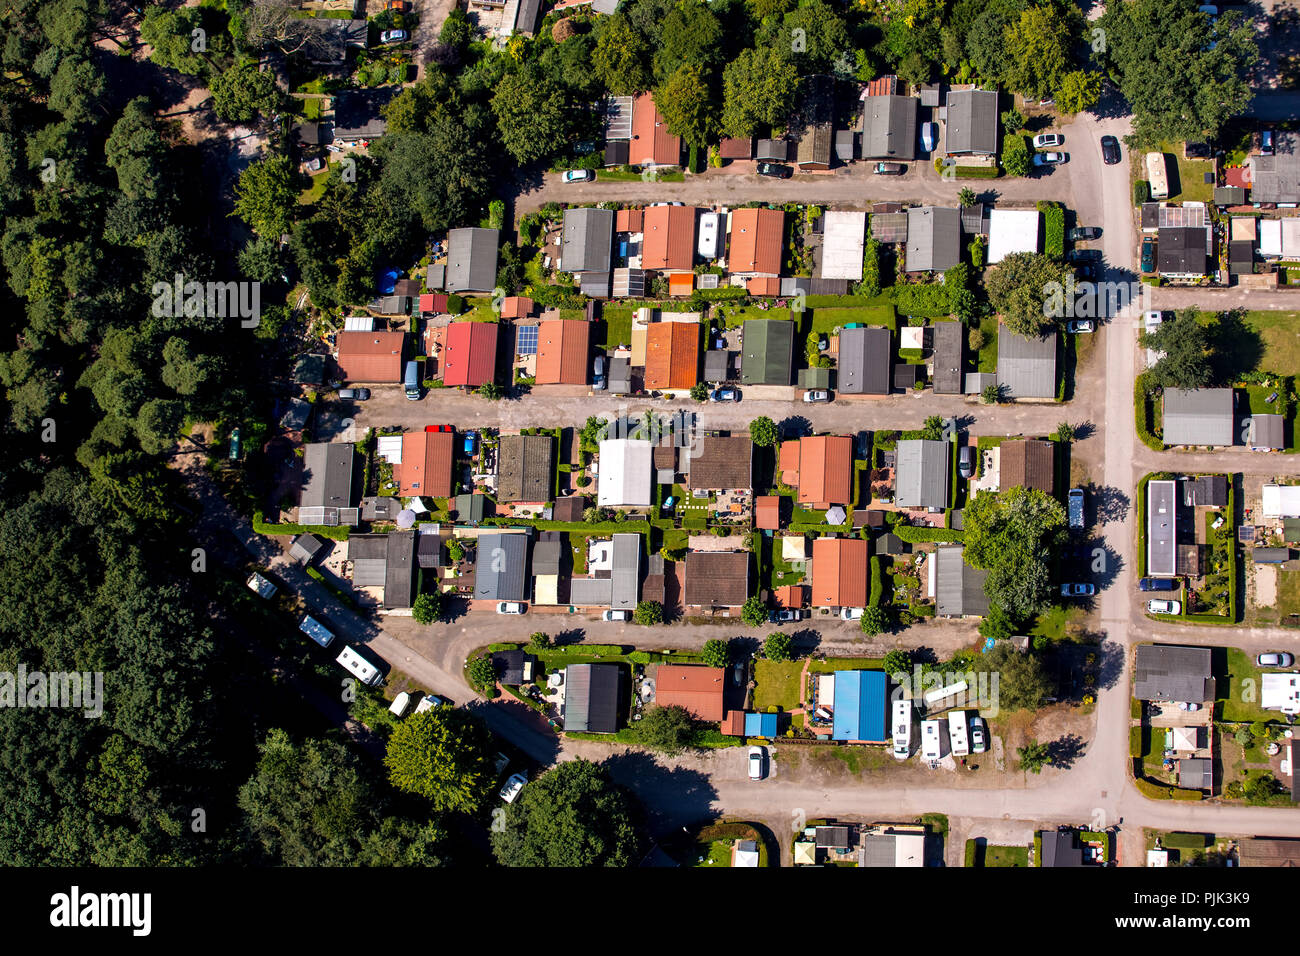 Aerial view, camping on Entenfangsee mbH, Wambach lake, Entenfang, controversial permanent camping, first residence, Mülheim an der Ruhr, city limits Duisburg, Ruhr area, North Rhine-Westphalia, Germany - Stock Image